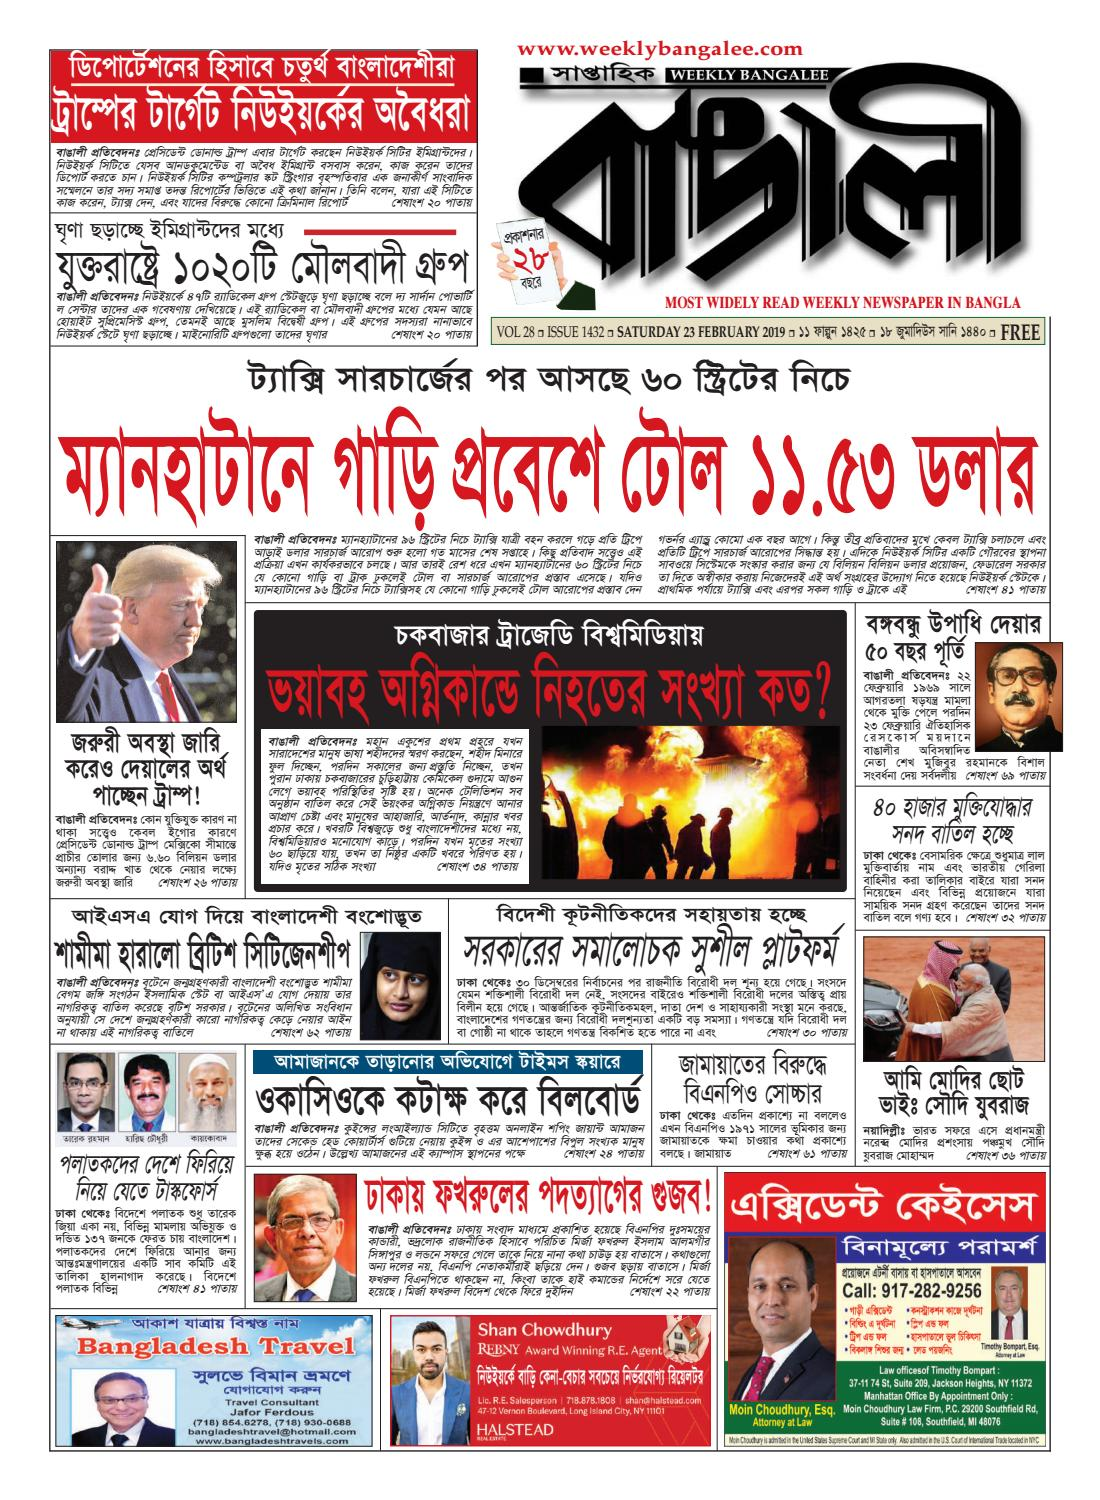 Weekly Bangalee - February 23, 2019 by Weekly Bangalee - issuu